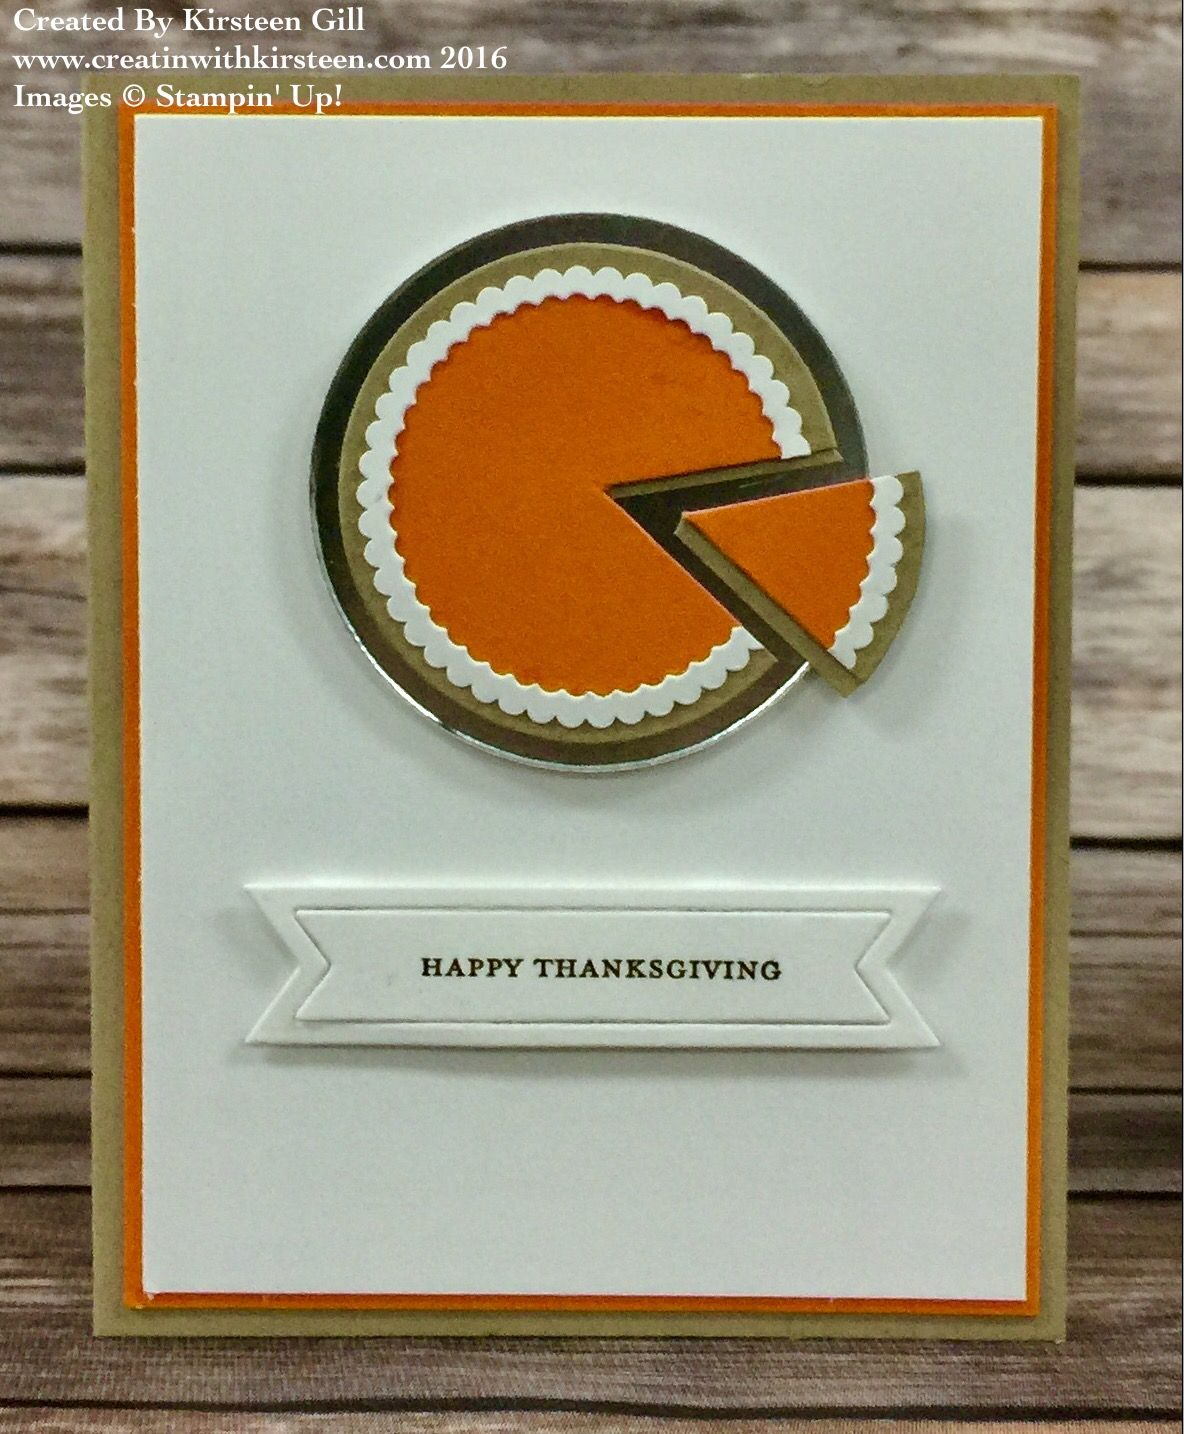 Exceptional Ideas For Thanksgiving Cards To Make Part - 10: Card Ideas